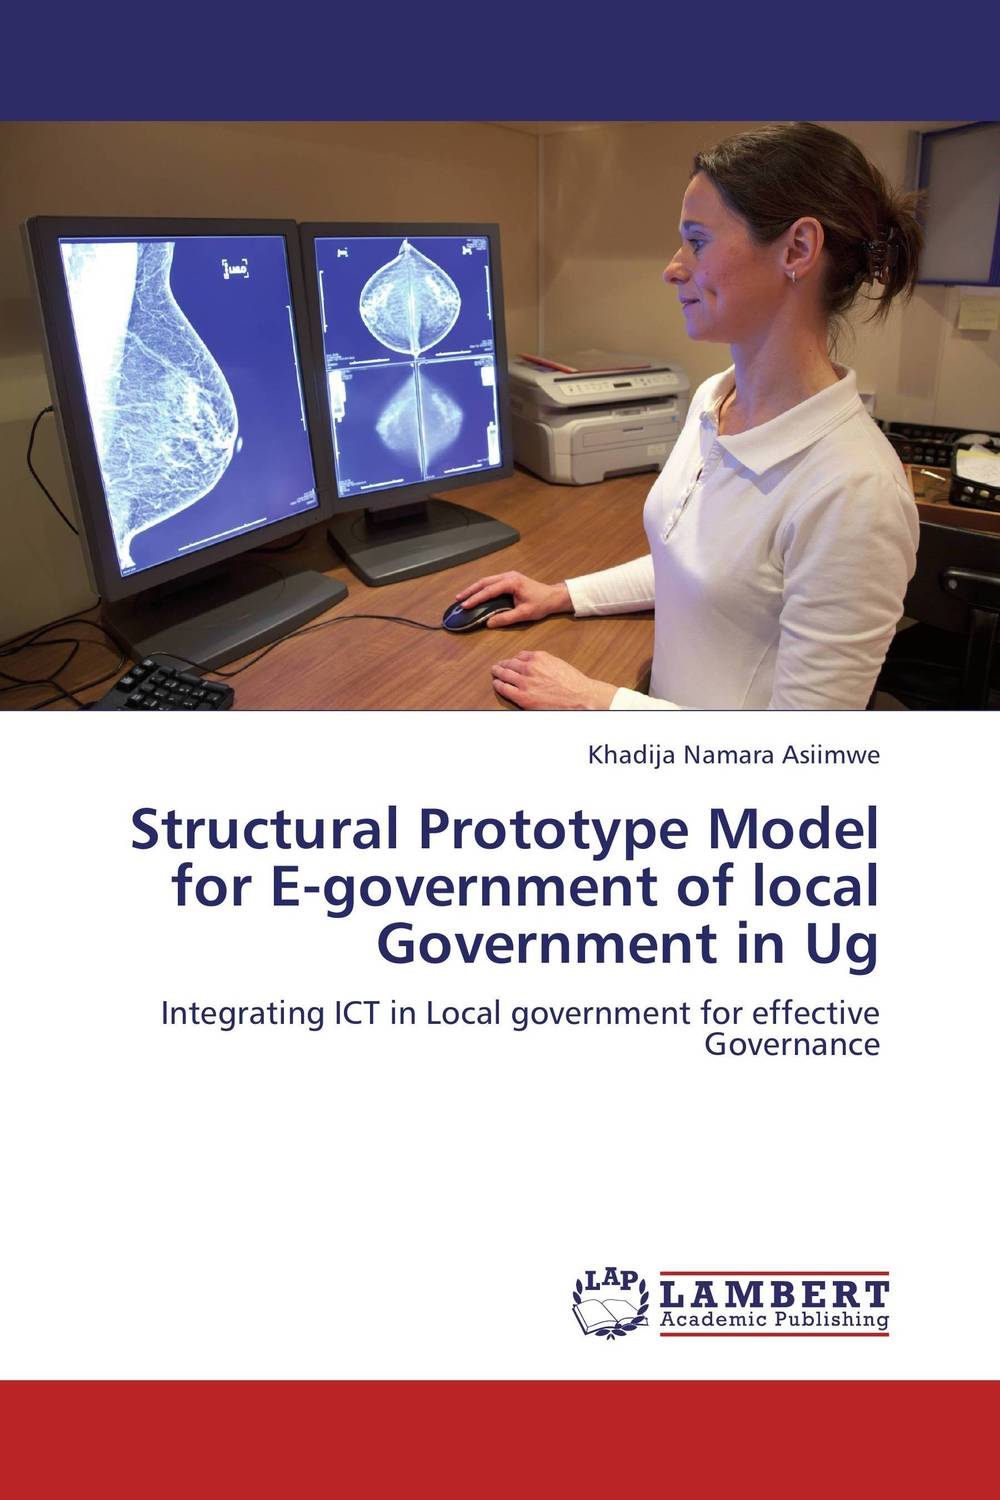 Structural Prototype Model for E-government of local Government in Ug